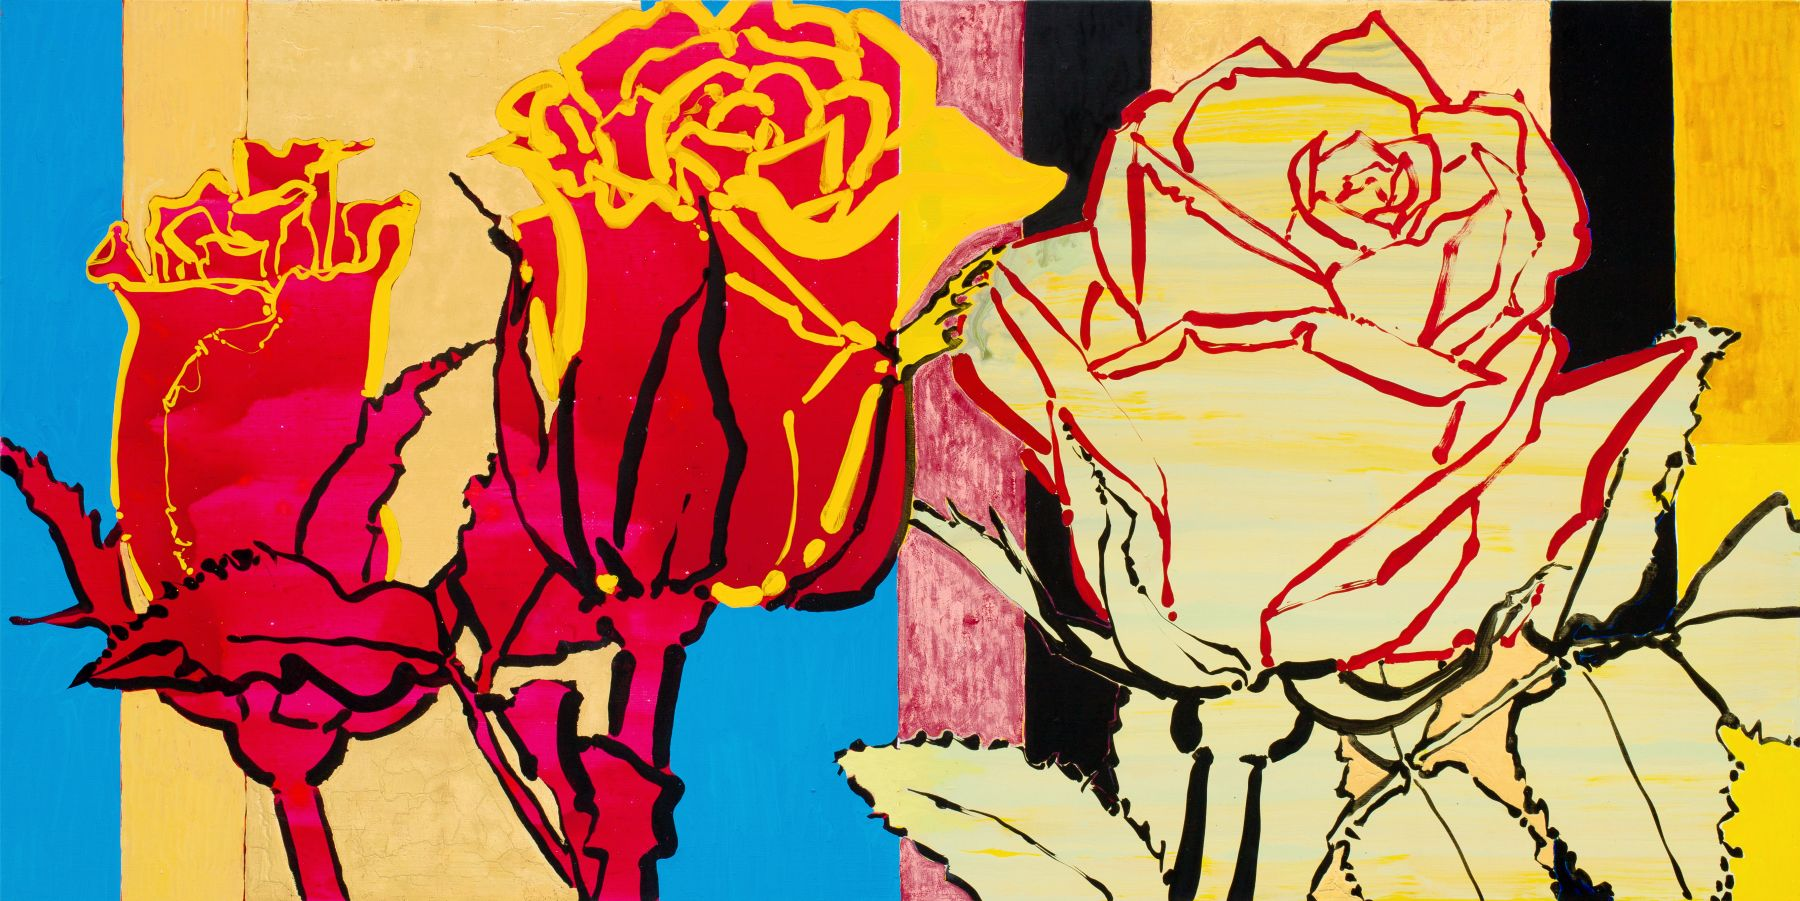 Red on Yellow, Yellow on Red Roses, 2017, Oil, acrylic, and gold leaf on canvas